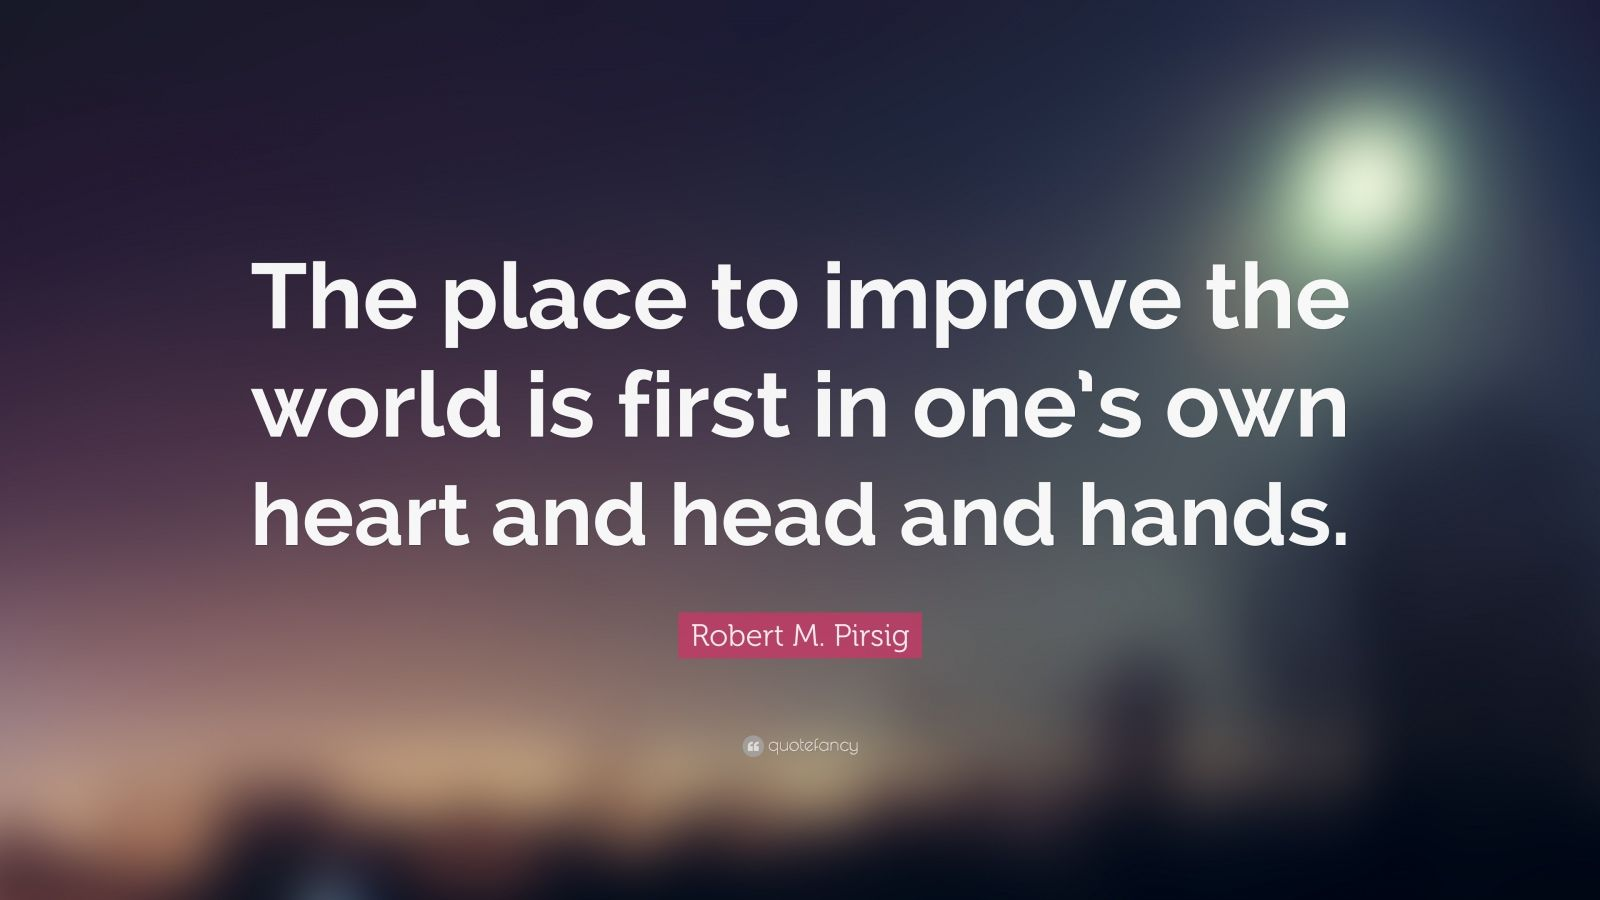 """Robert M. Pirsig Quote: """"The place to improve the world is first in one's own heart and head and hands."""""""